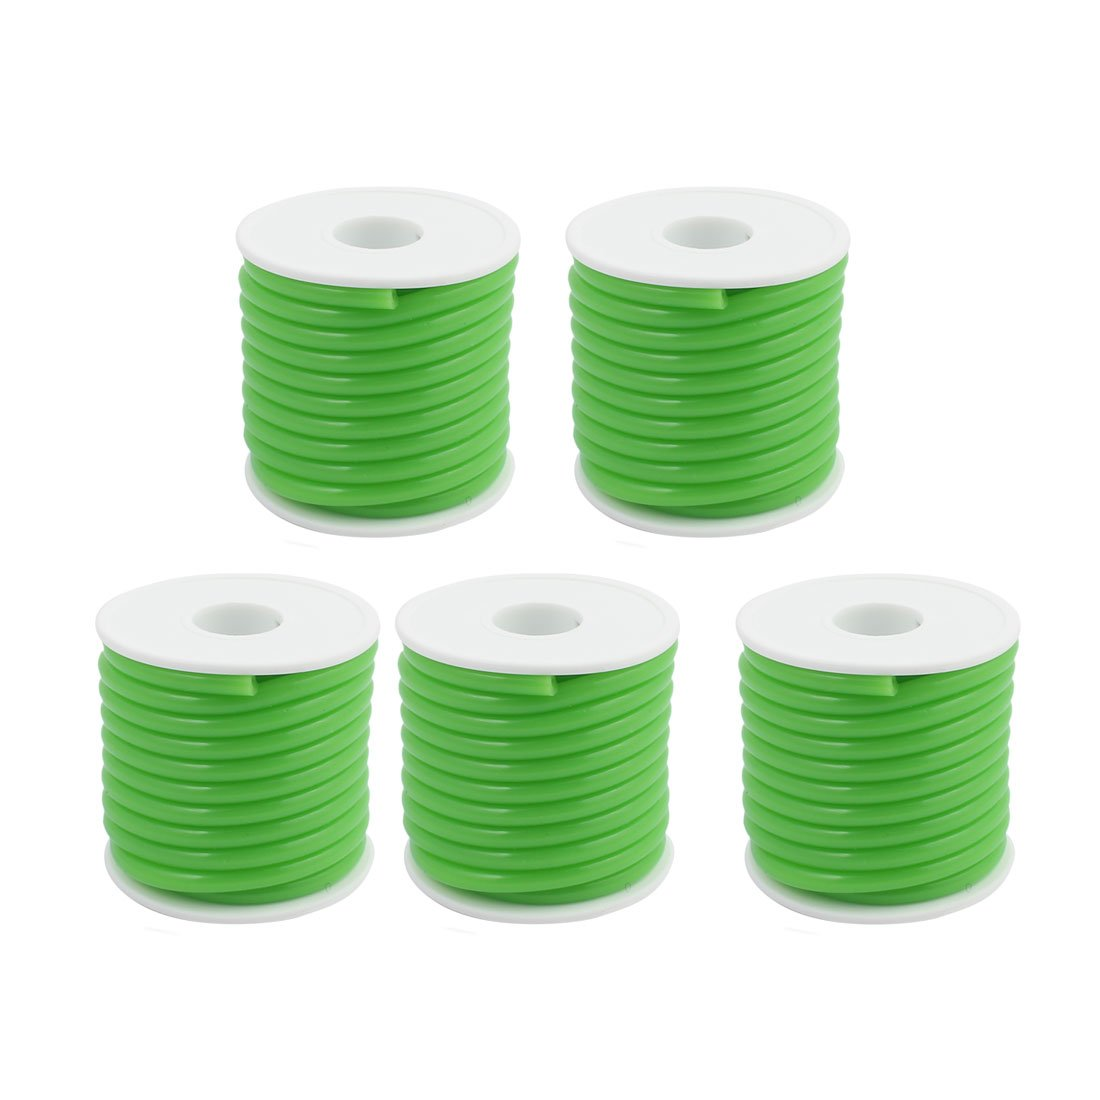 uxcell 2.5mm x 5.2mm Green Silicone Tube Hose Pipe Roll 5M Length for Gas Fuel 5pcs